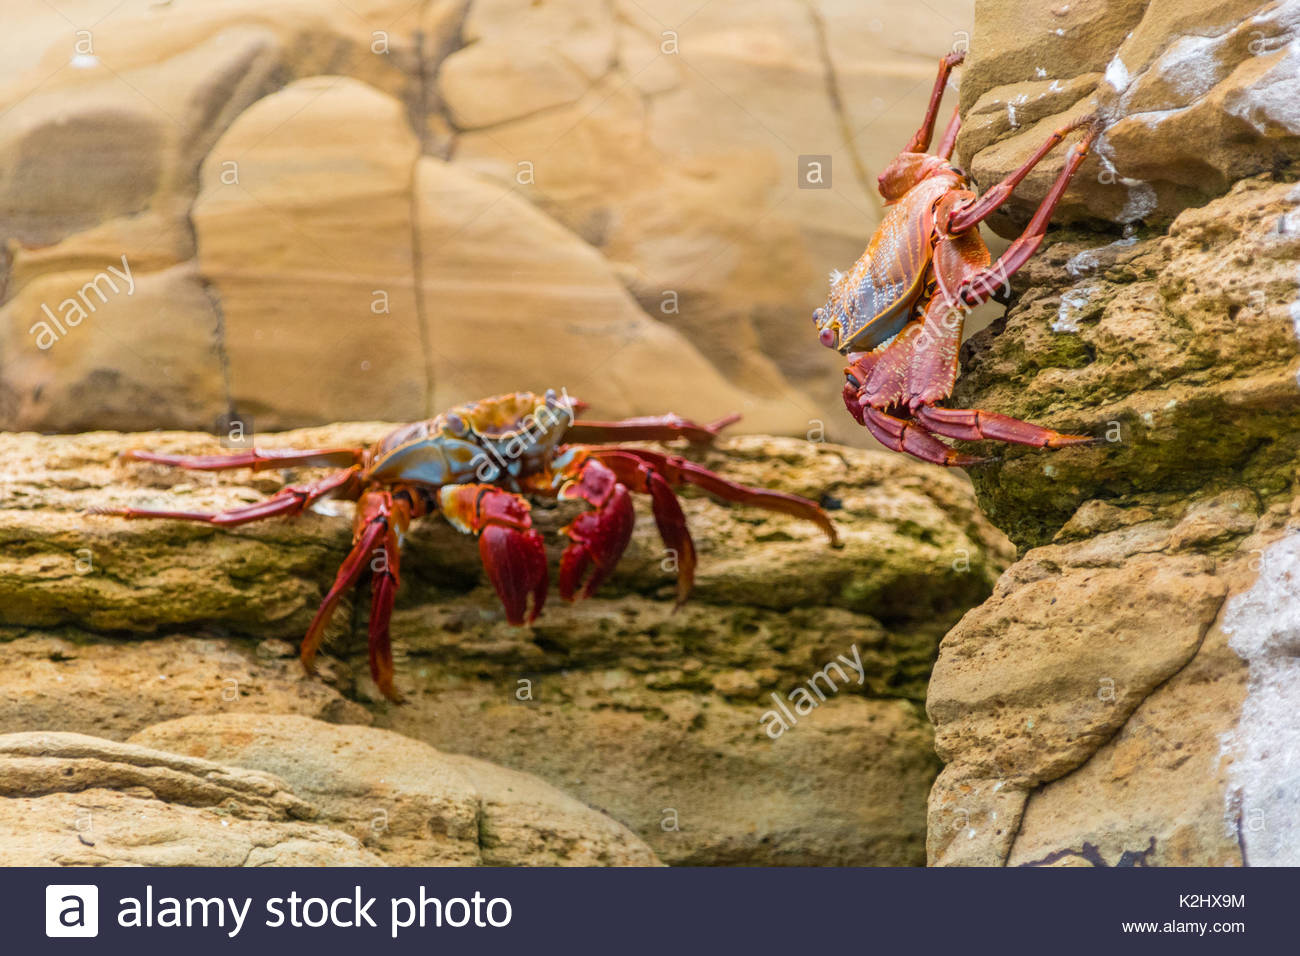 A pair of Sally Lightfoot, Grapsus grapsus, crabs pose along the rocks of the Pearl Islands in Panama - Stock Image